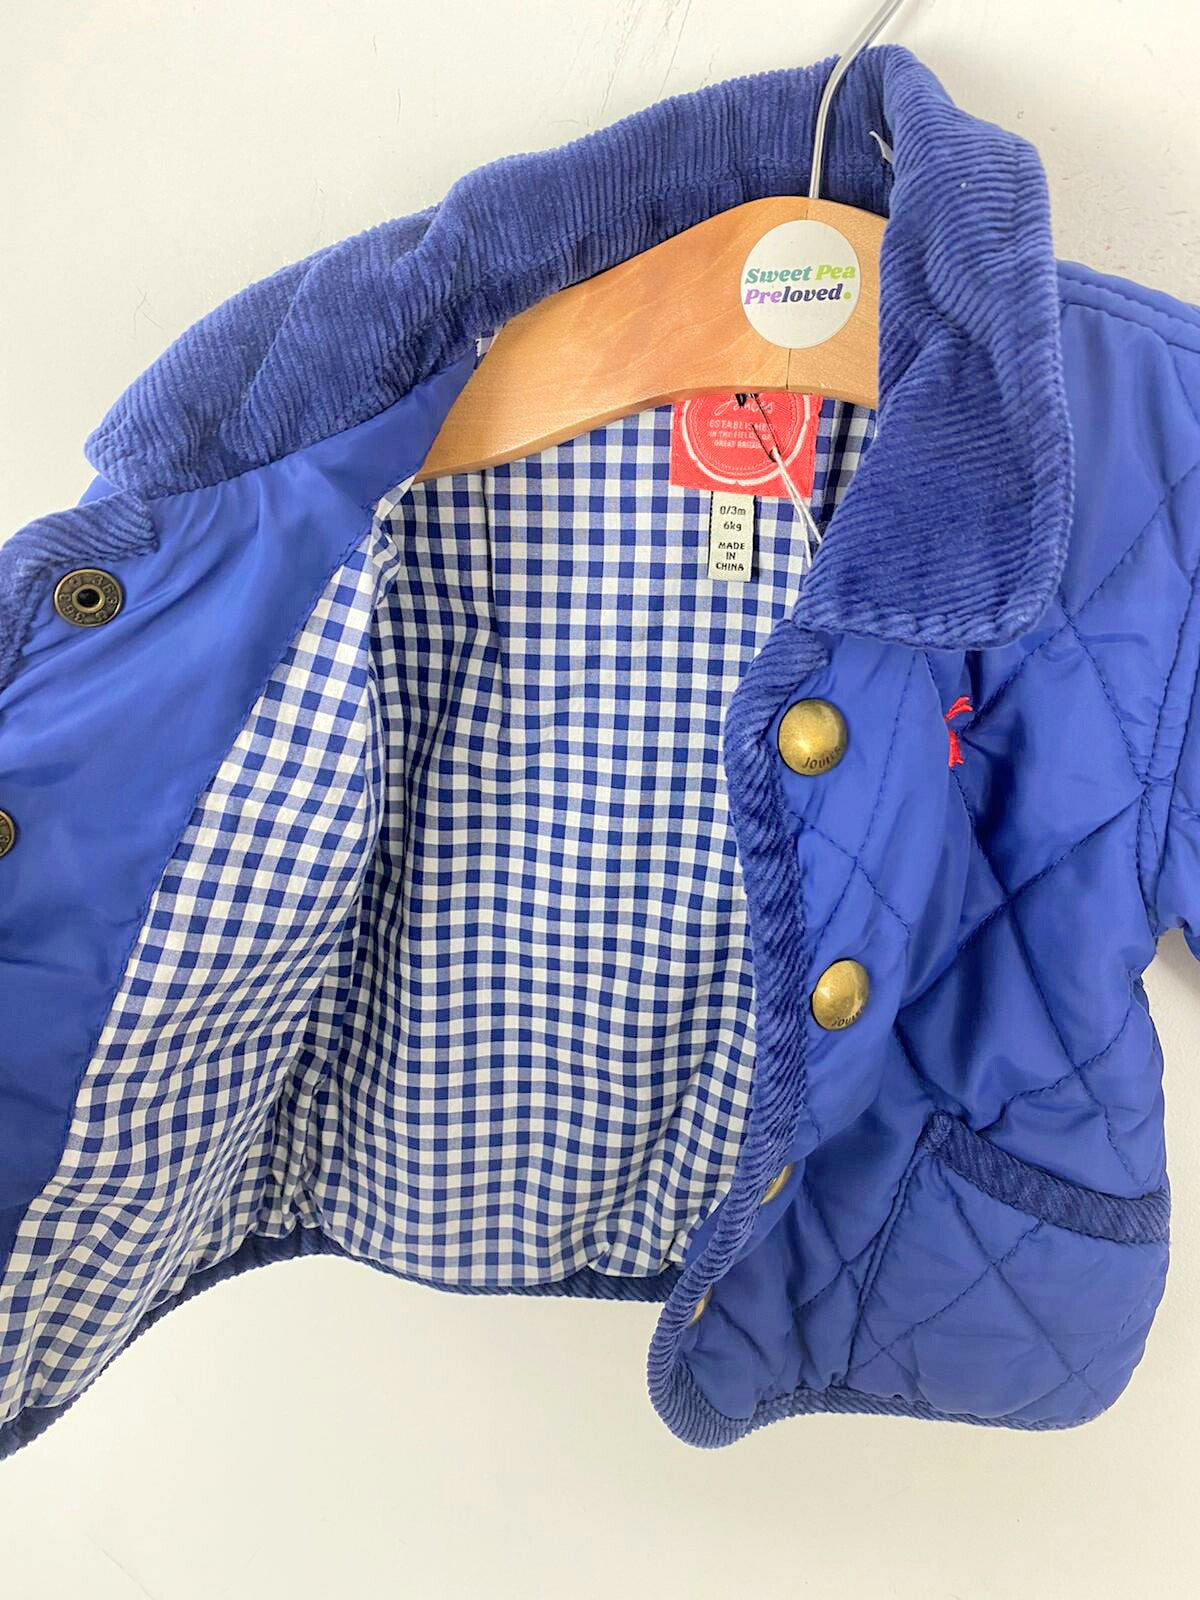 0-3m Joules navy quilted jacket like new